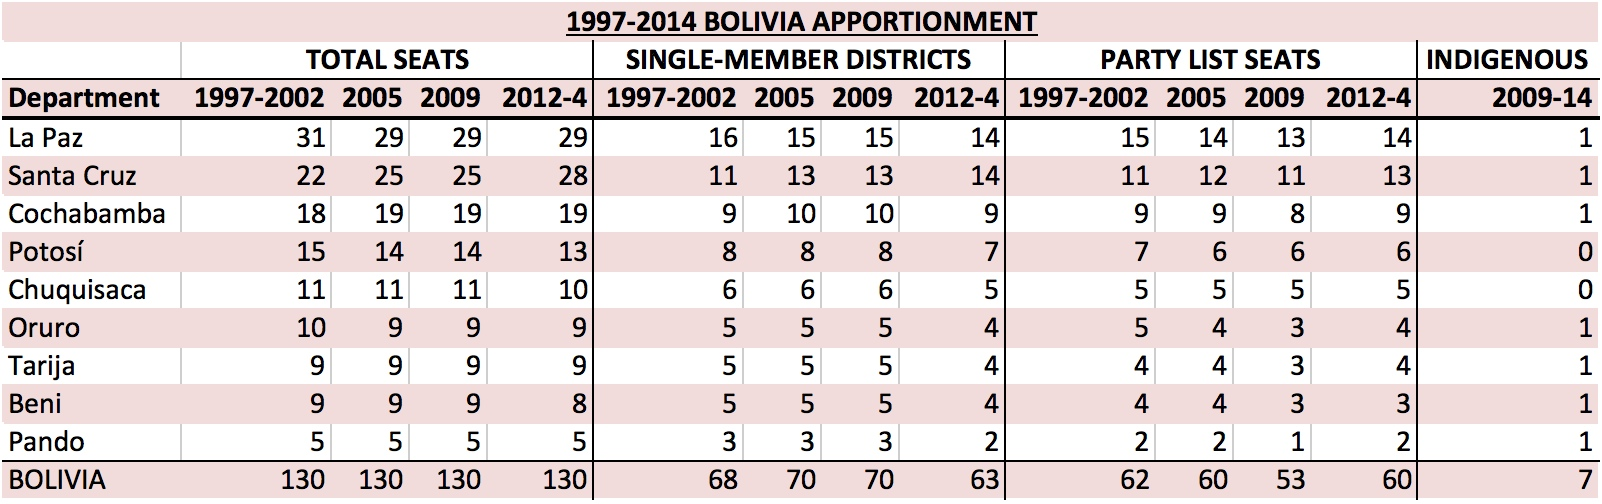 BO 1997-2014 Apportionment